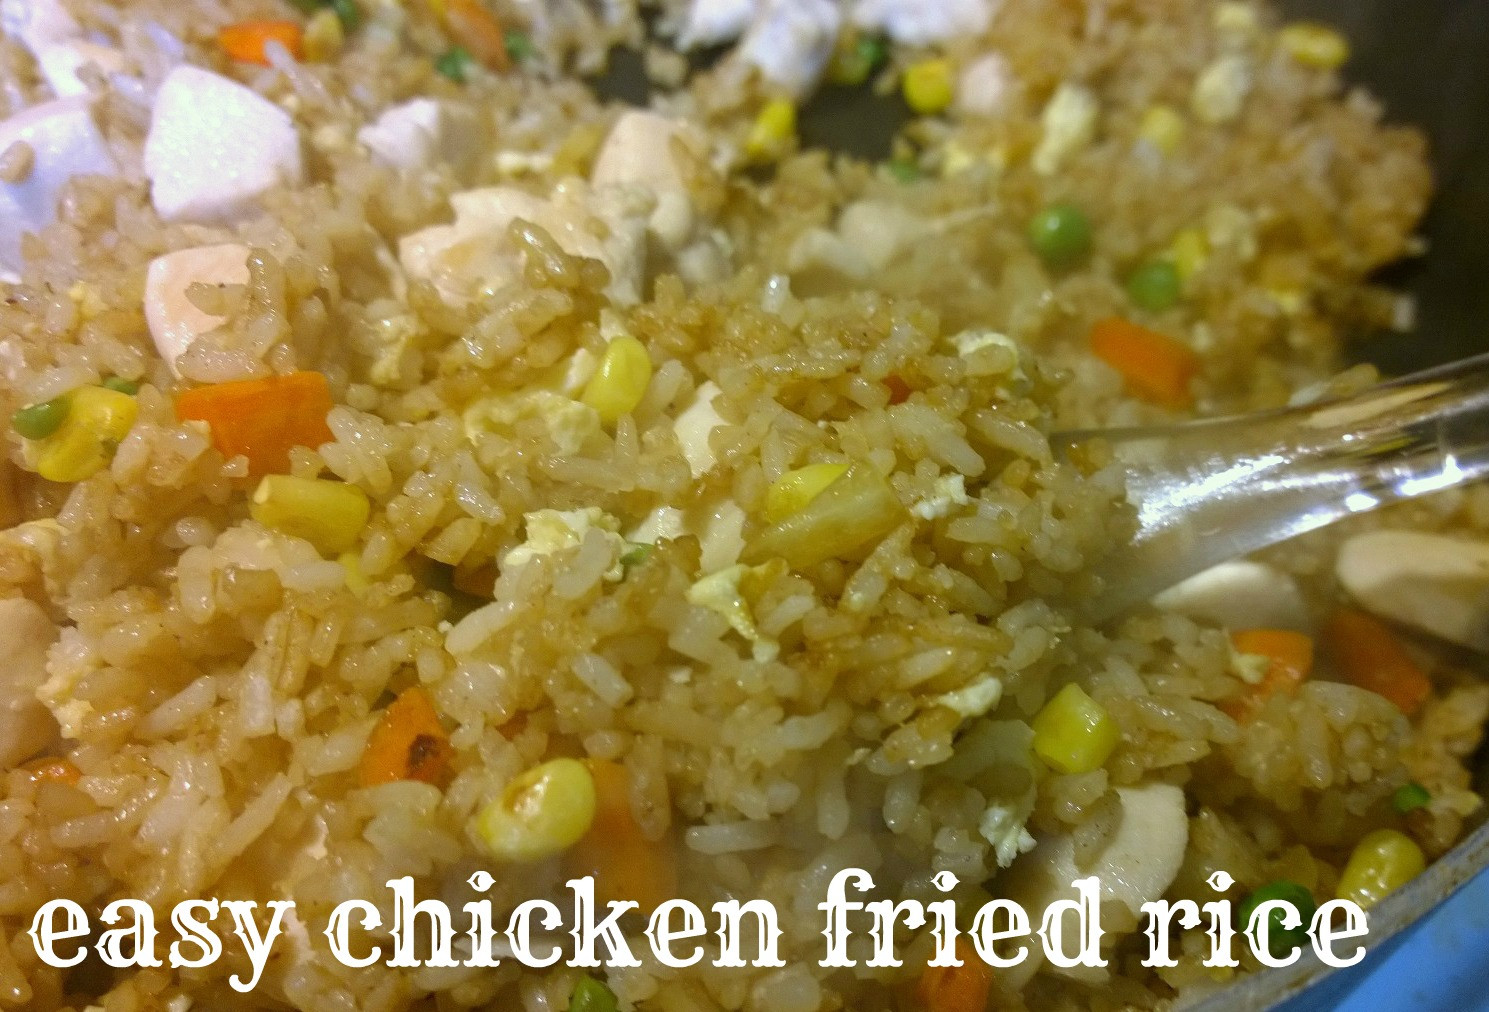 Easy Pork Fried Rice  Easiest Chicken Fried Rice Recipe Momma Without a Clue